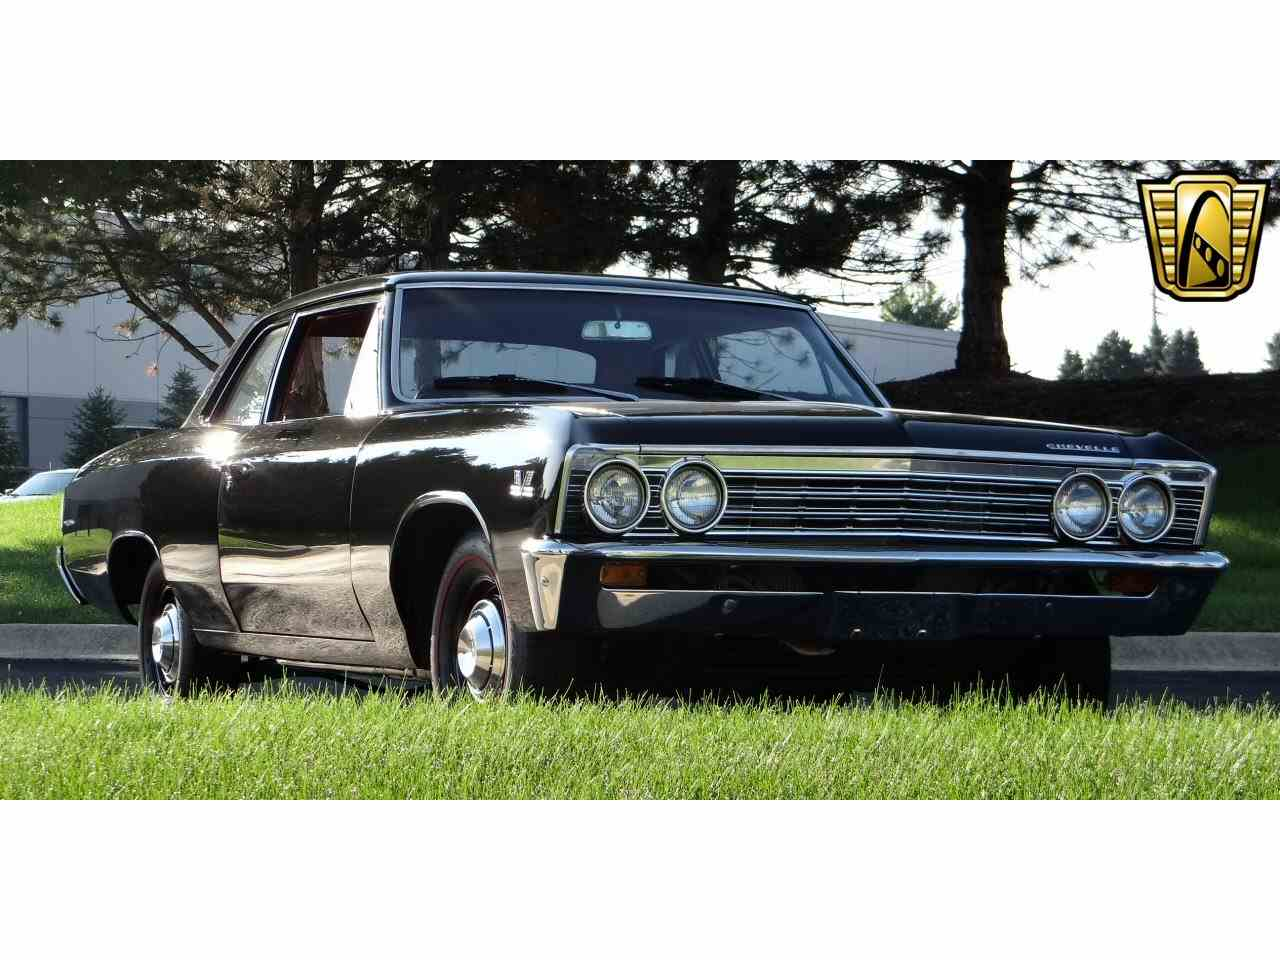 Large Picture of Classic '67 Chevrolet Chevelle located in Crete Illinois - $39,995.00 Offered by Gateway Classic Cars - Chicago - KEYO